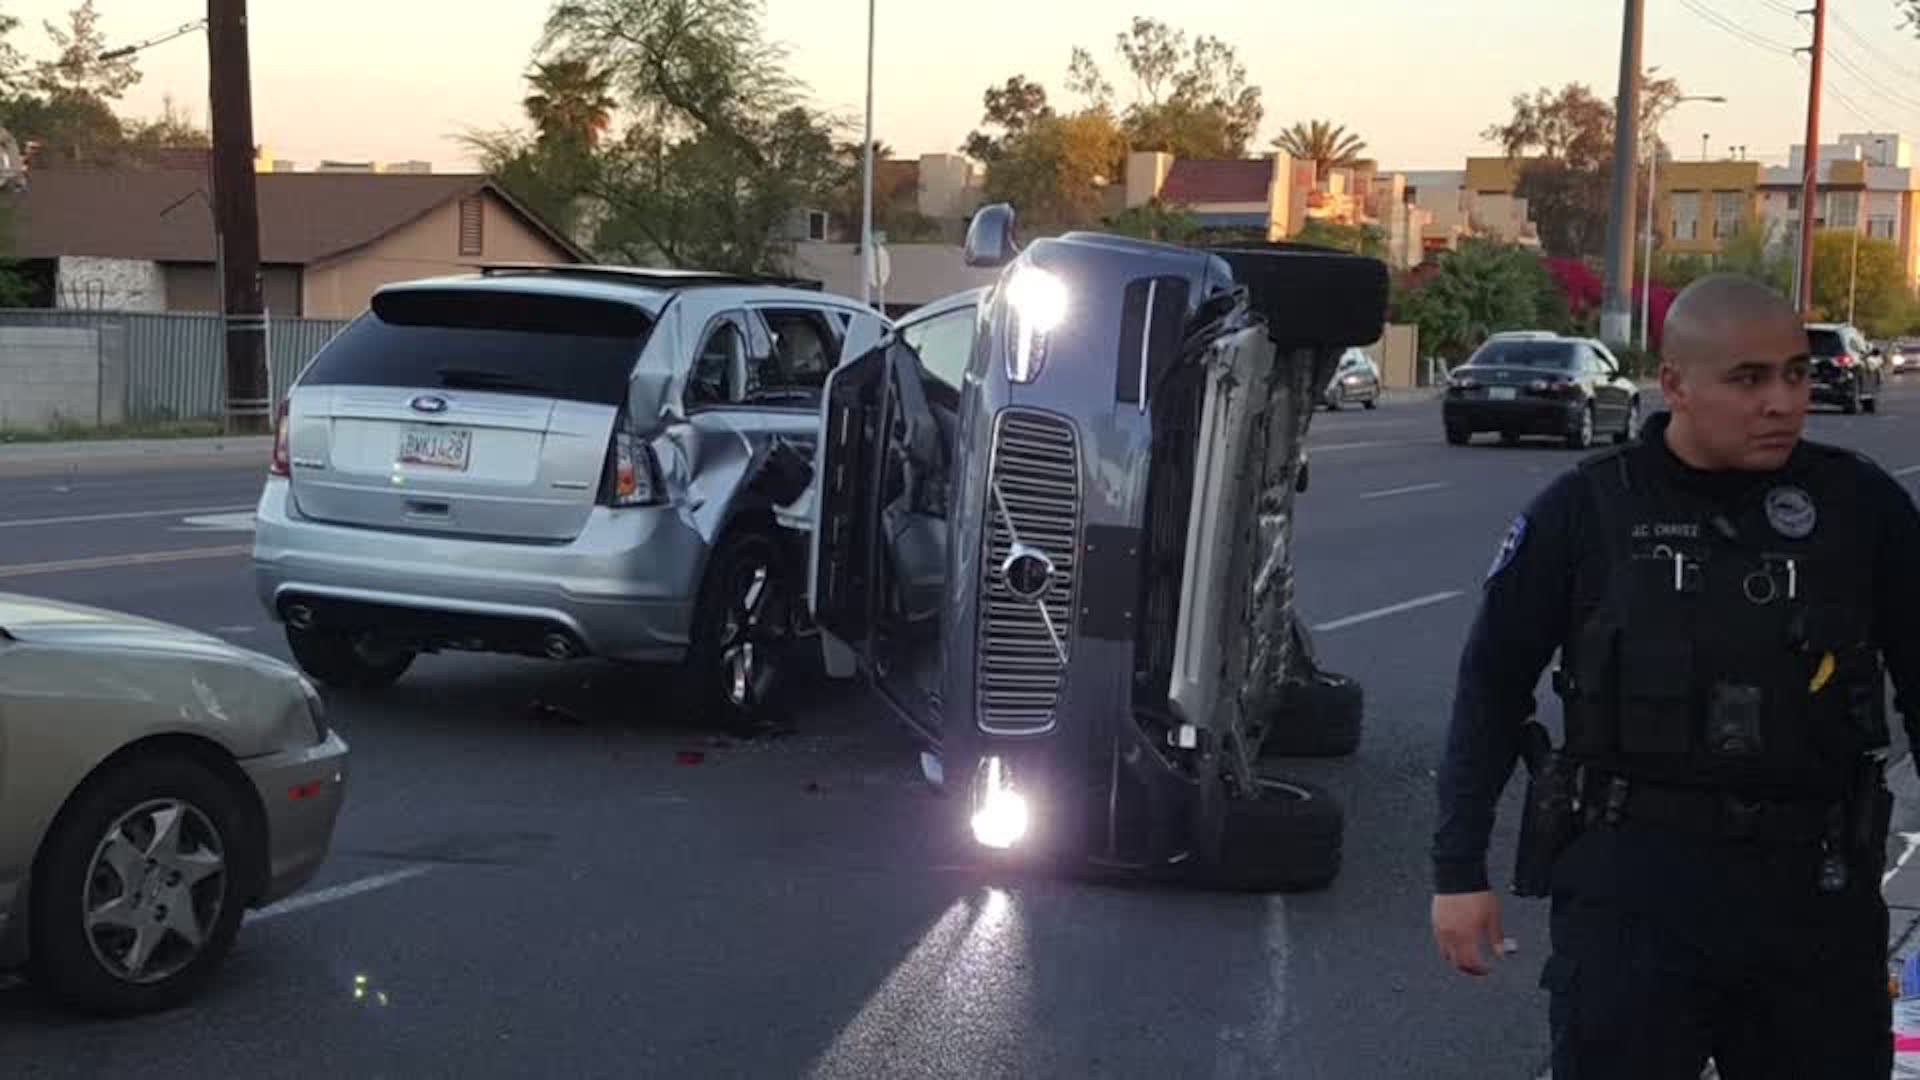 We know more about that crash involving Uber's self-driving car